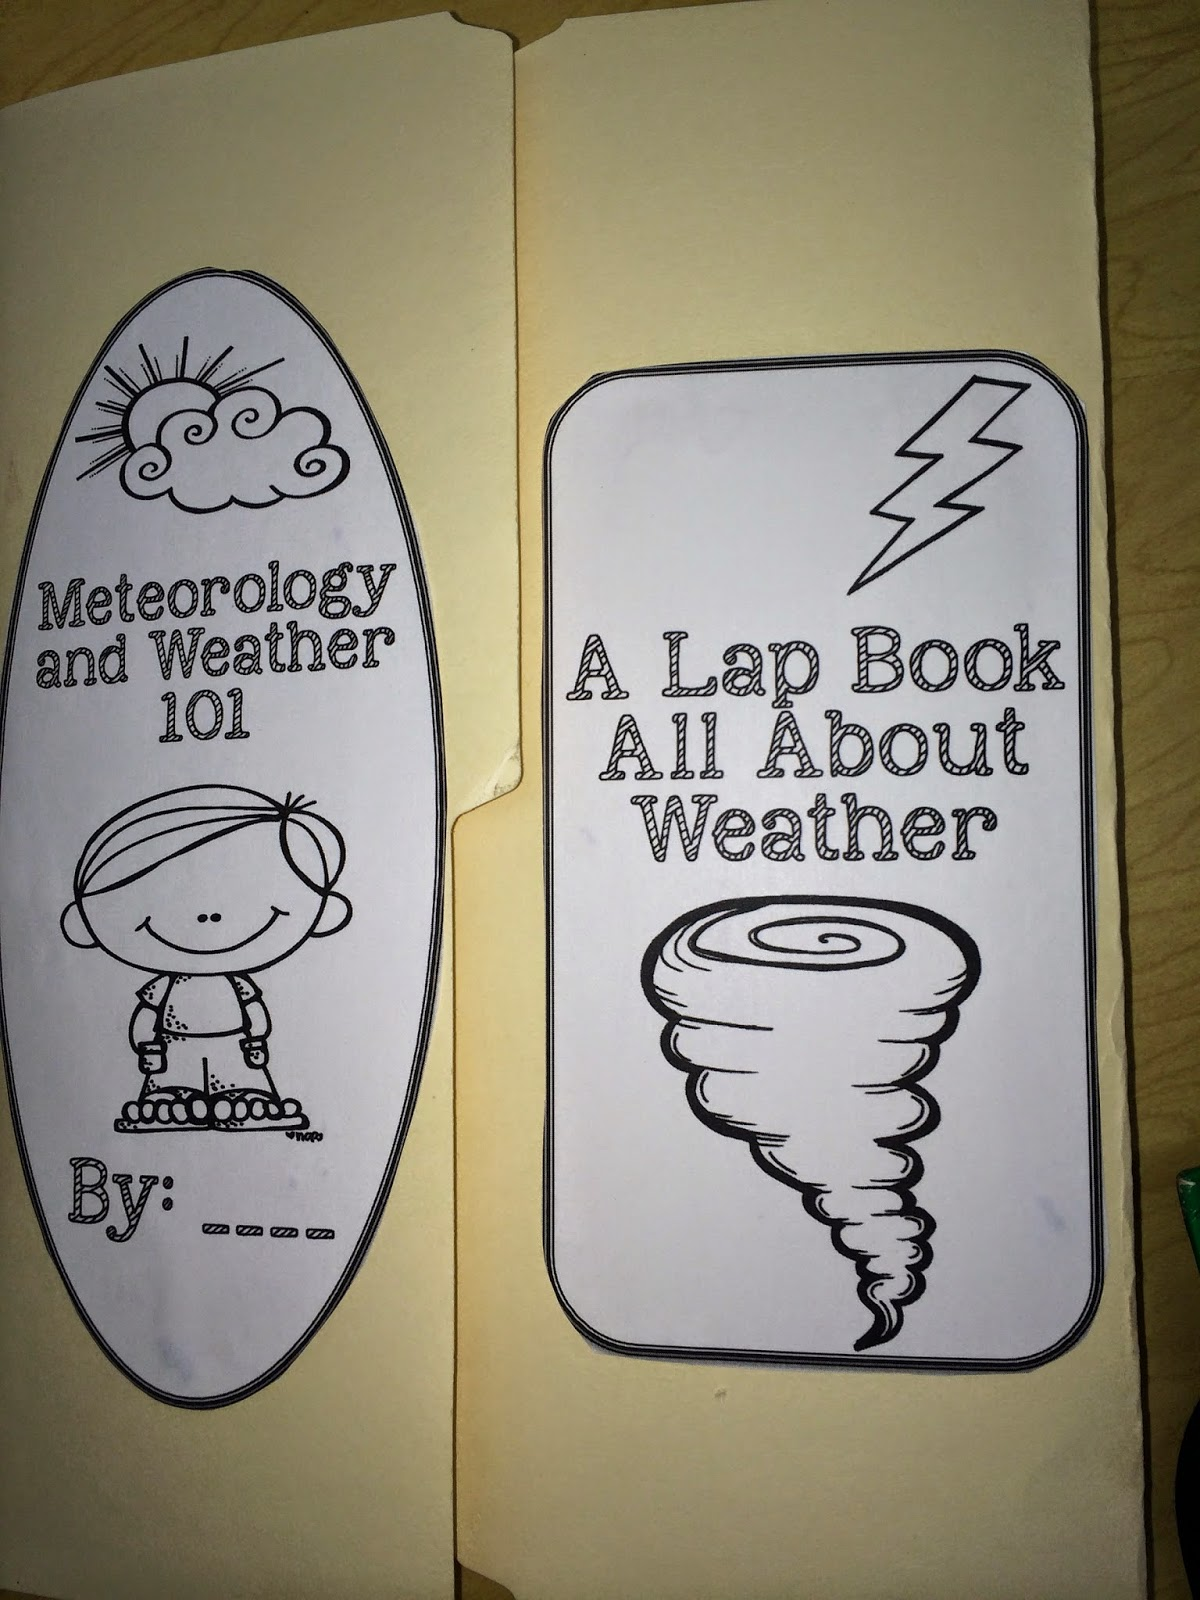 http://www.teacherspayteachers.com/Product/Weather-and-Meteorology-101-Lapbook-and-Student-Workbook-Mega-Pack-1149092